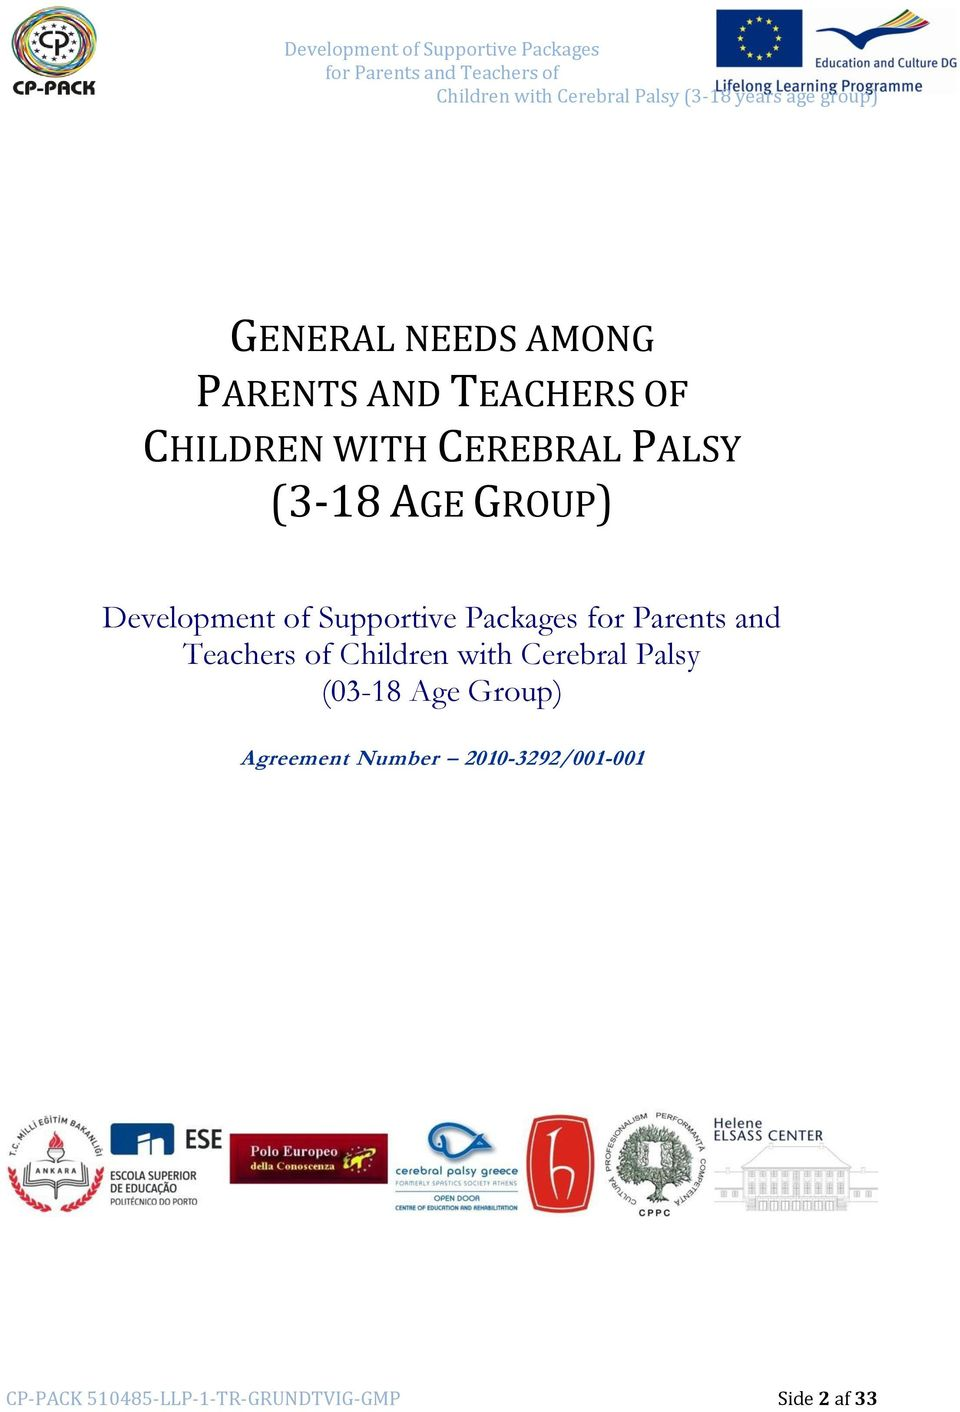 and Teachers of Children with Cerebral Palsy (03-18 Age Group)